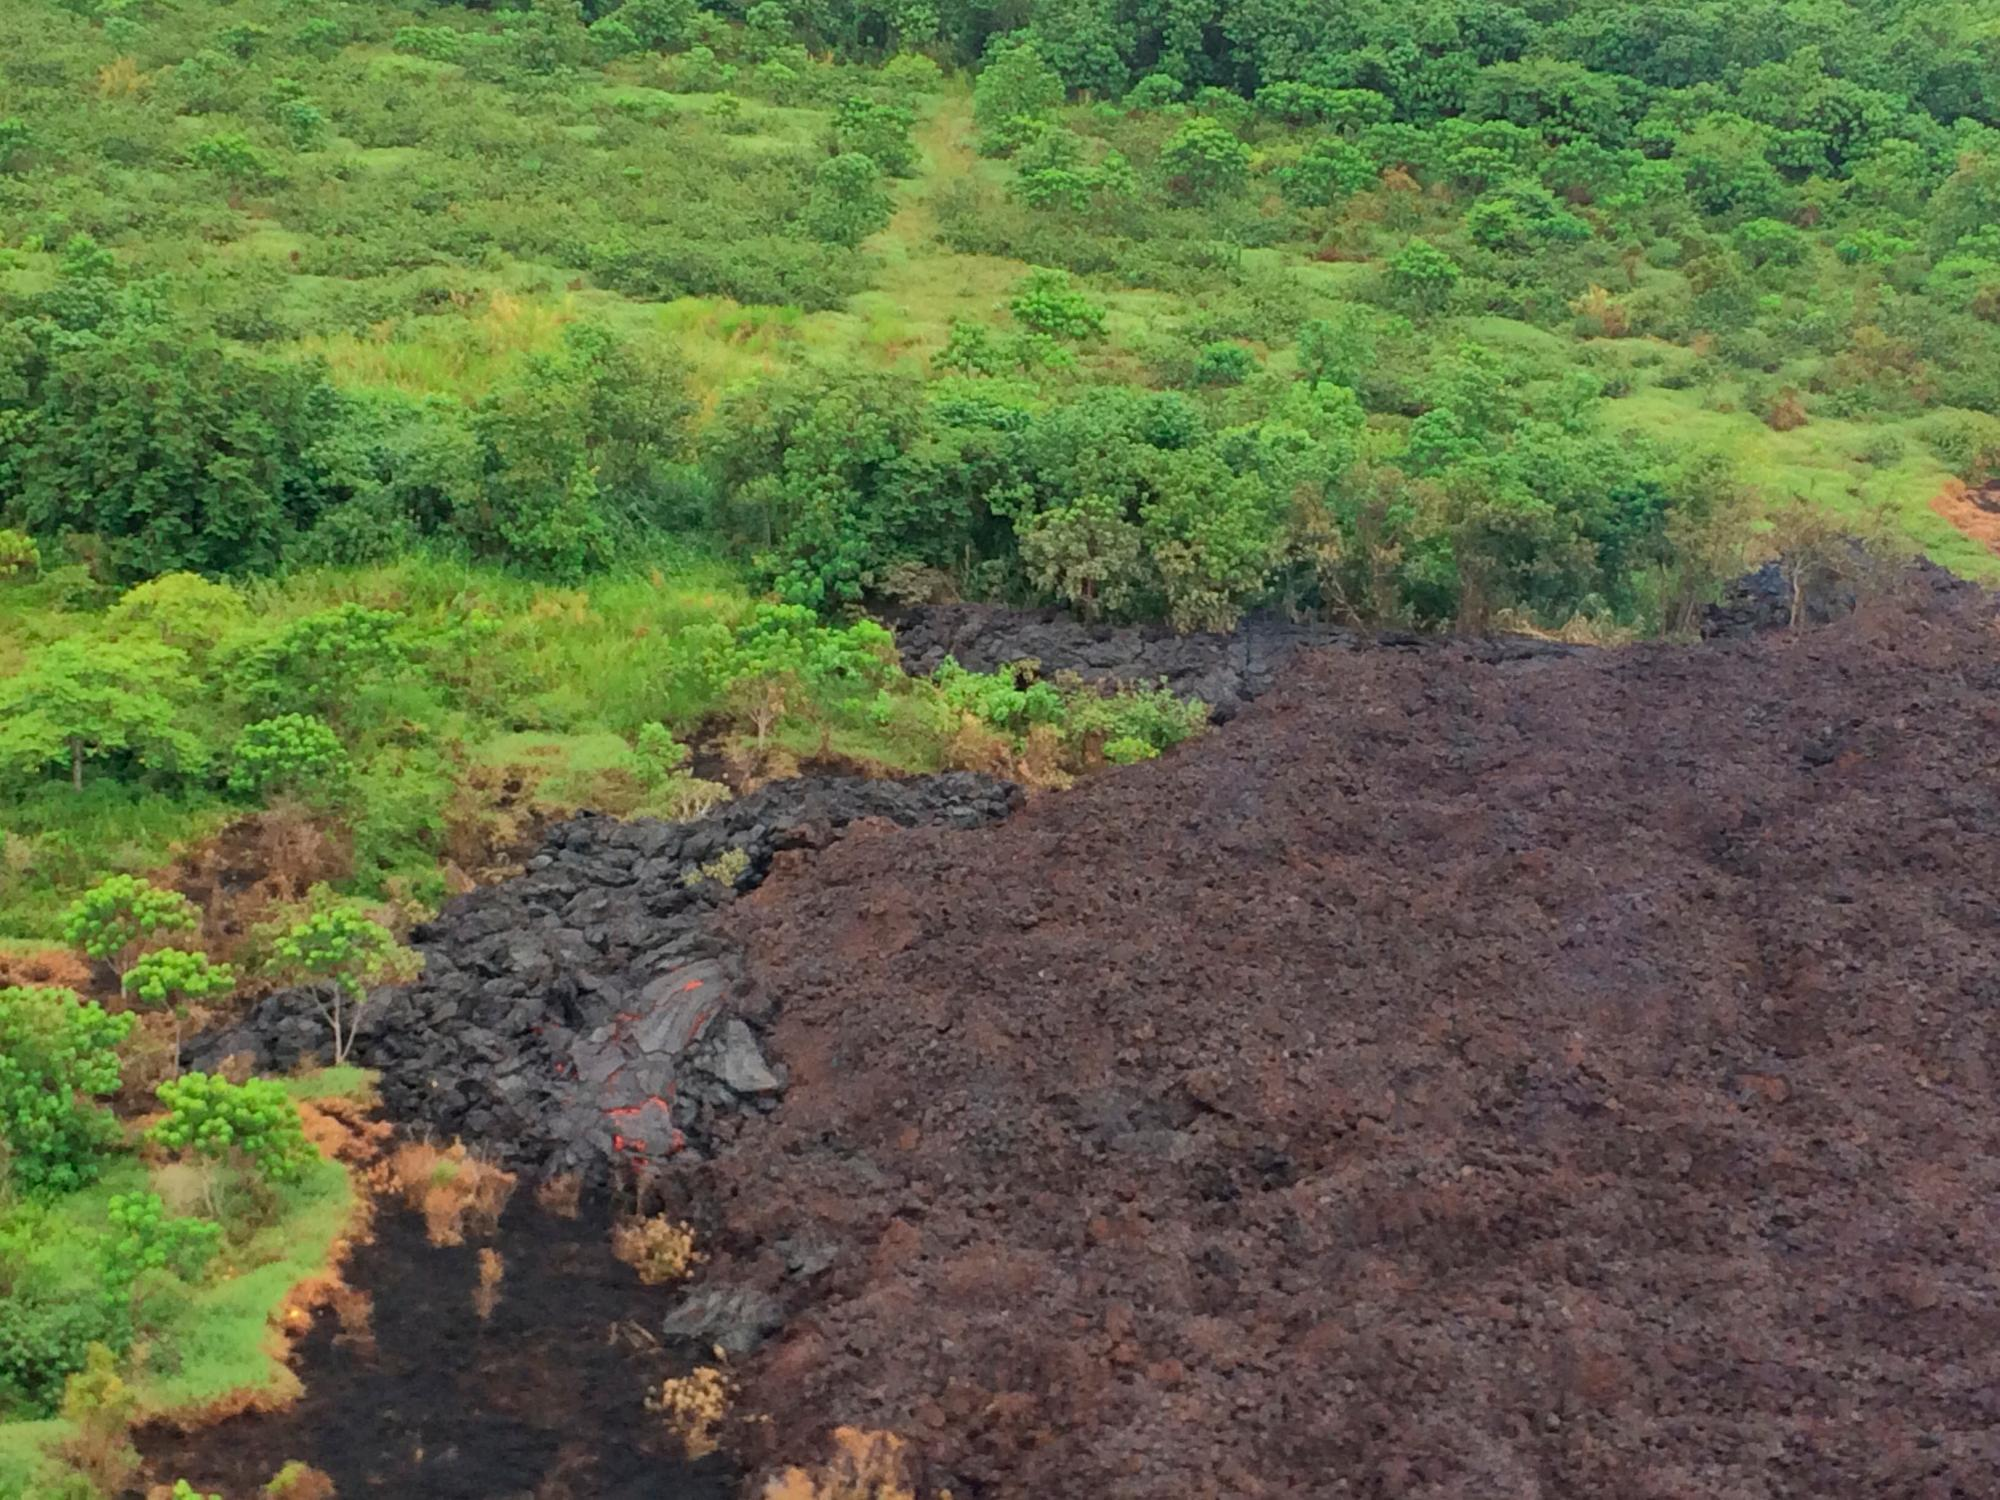 "This Thursday, May 17, 2018, aerial image released by the U.S. Geological Survey, shows Fissure 17 at about 07:00 a.m. HST., in Pahoa, Hawaii. The Fissure 17 flow front has slowed substantially with only small amounts of pasty ""toothpaste"" lava oozing out from the flow front. However lava continues to be erupted from the active fissure. This lava appears to be accumulating within the flow and has widened the flow margins slightly. (U.S. Geological Survey via AP)"